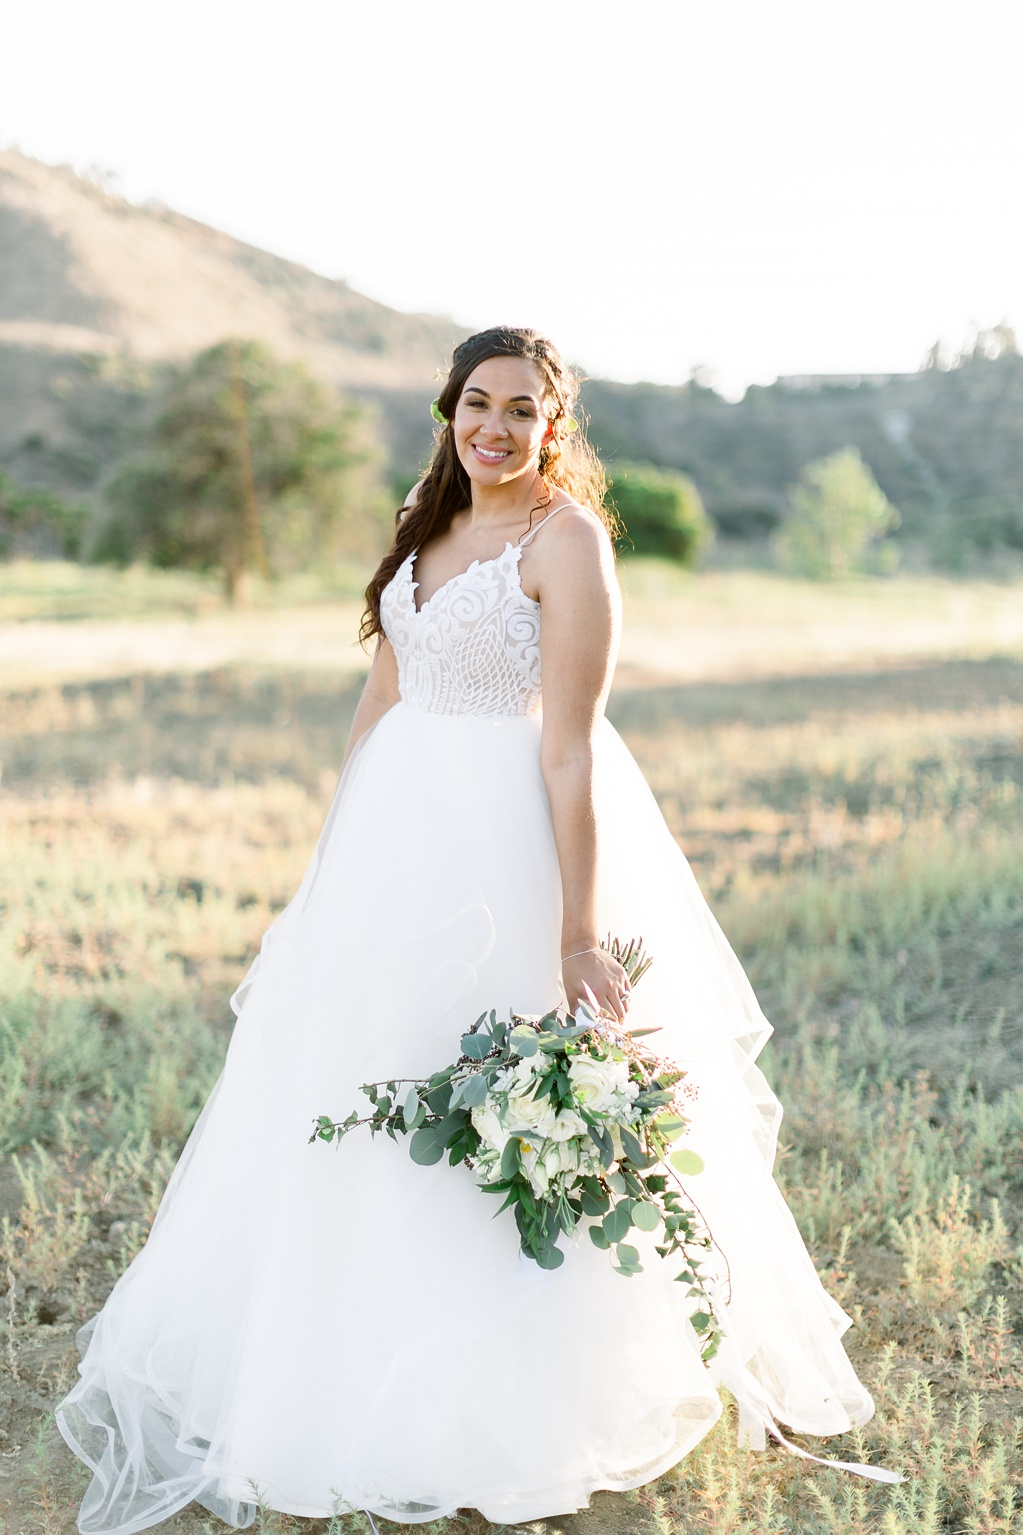 An Organic Floral Inspired Summer Wedding in the open fields of Hamilton Oaks, San Juan Capistrano by Wedding Photographer Madison Ellis (66)